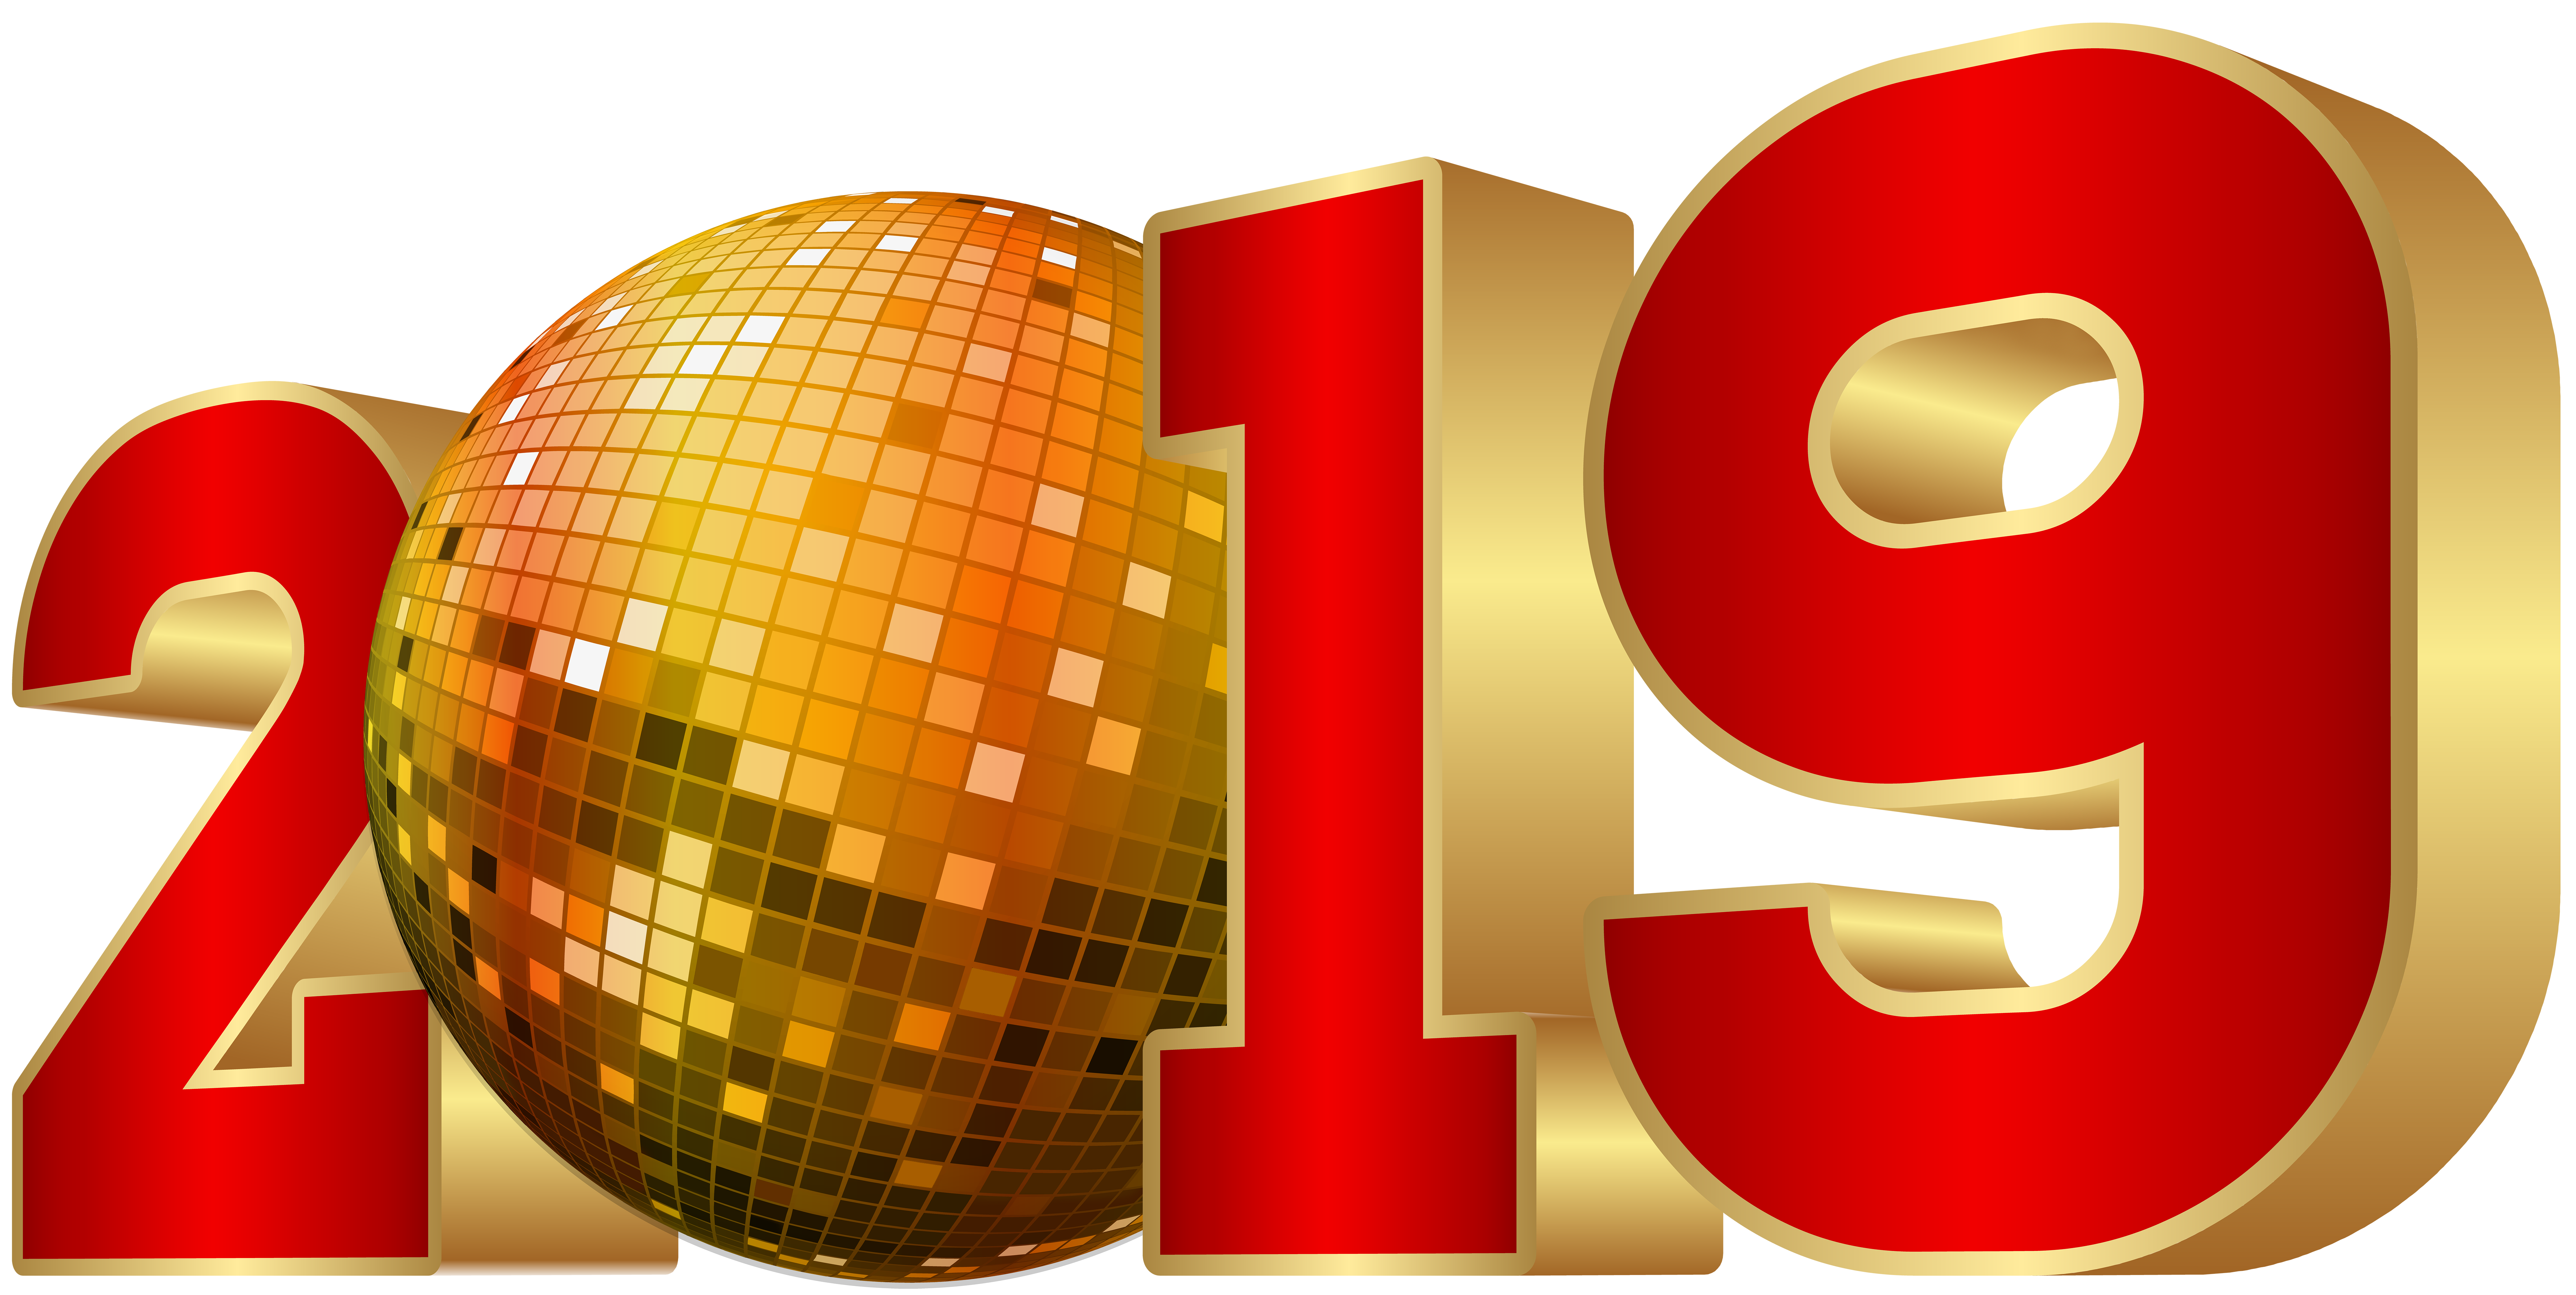 2019 Party New Year PNG Image.